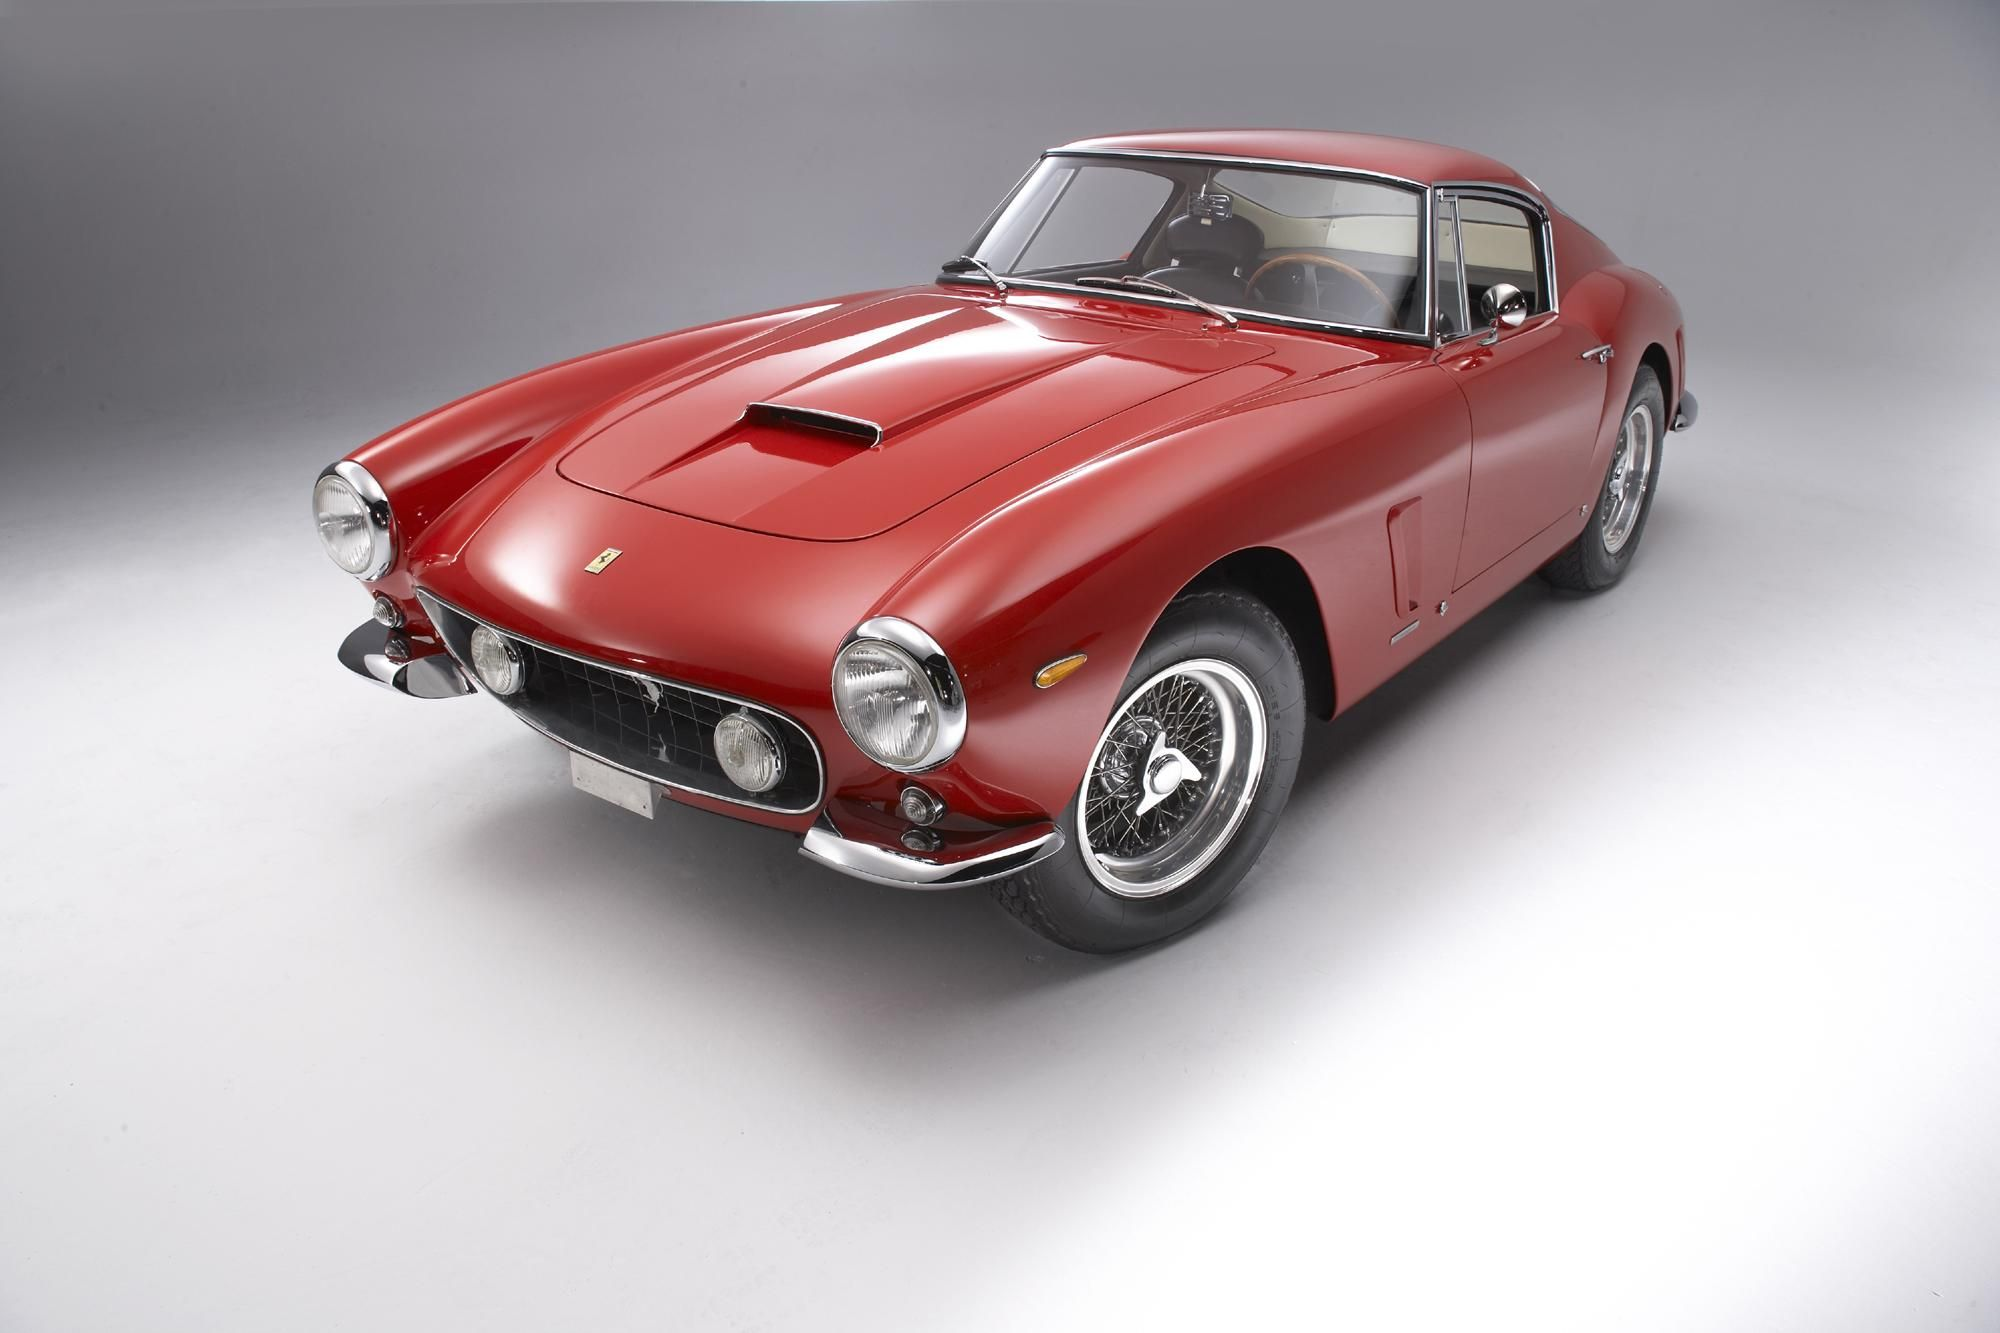 Ferrari 250 | Automobiles | Pinterest | Ferrari, Cars and Wheels